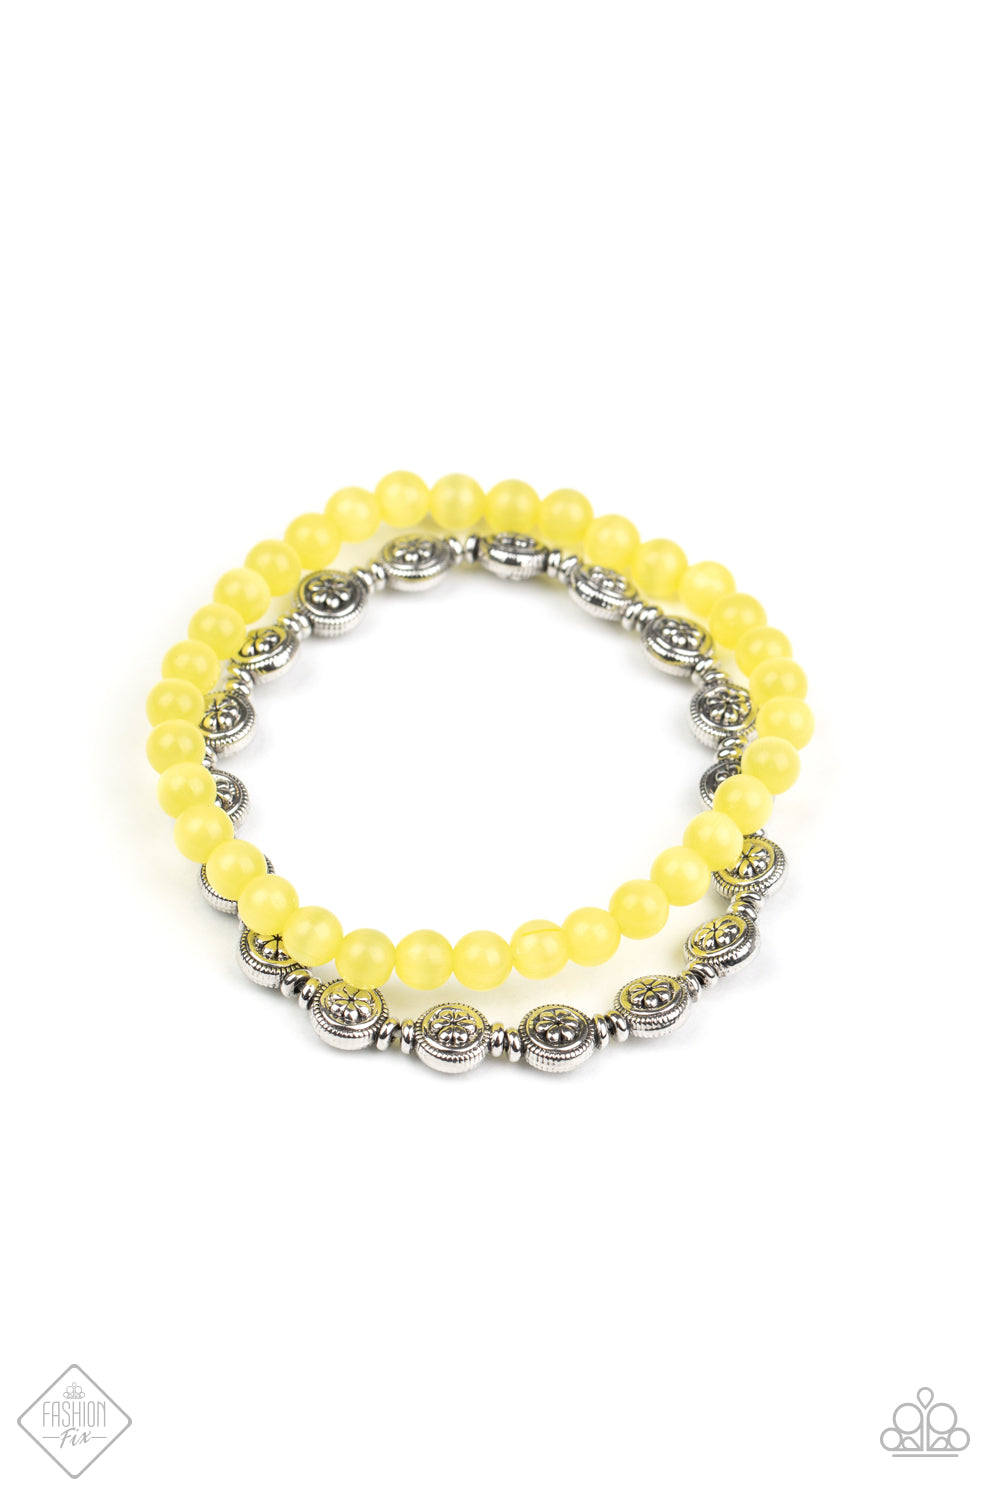 Paparazzi Bracelet Fashion Fix Aug2020 ~ Dewy Dandelions - Yellow